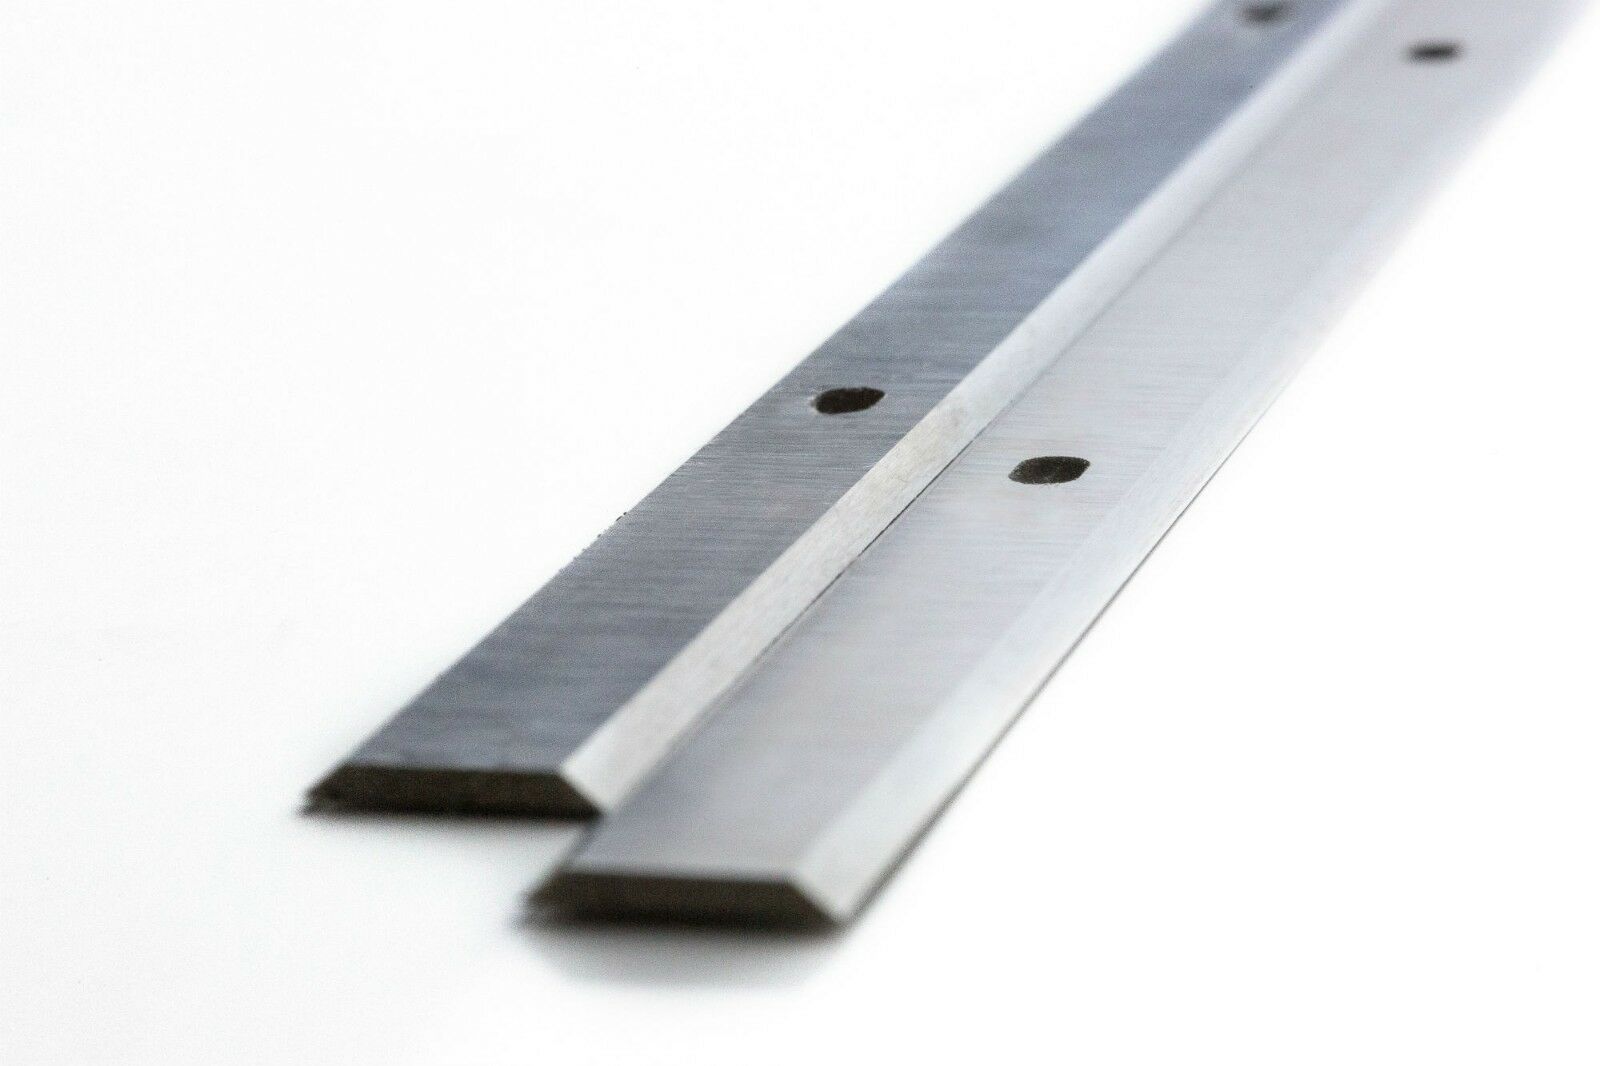 320mm Delta 22-562 HSS Double Edged Disposable Planer Blades 1 Pair-S703S7